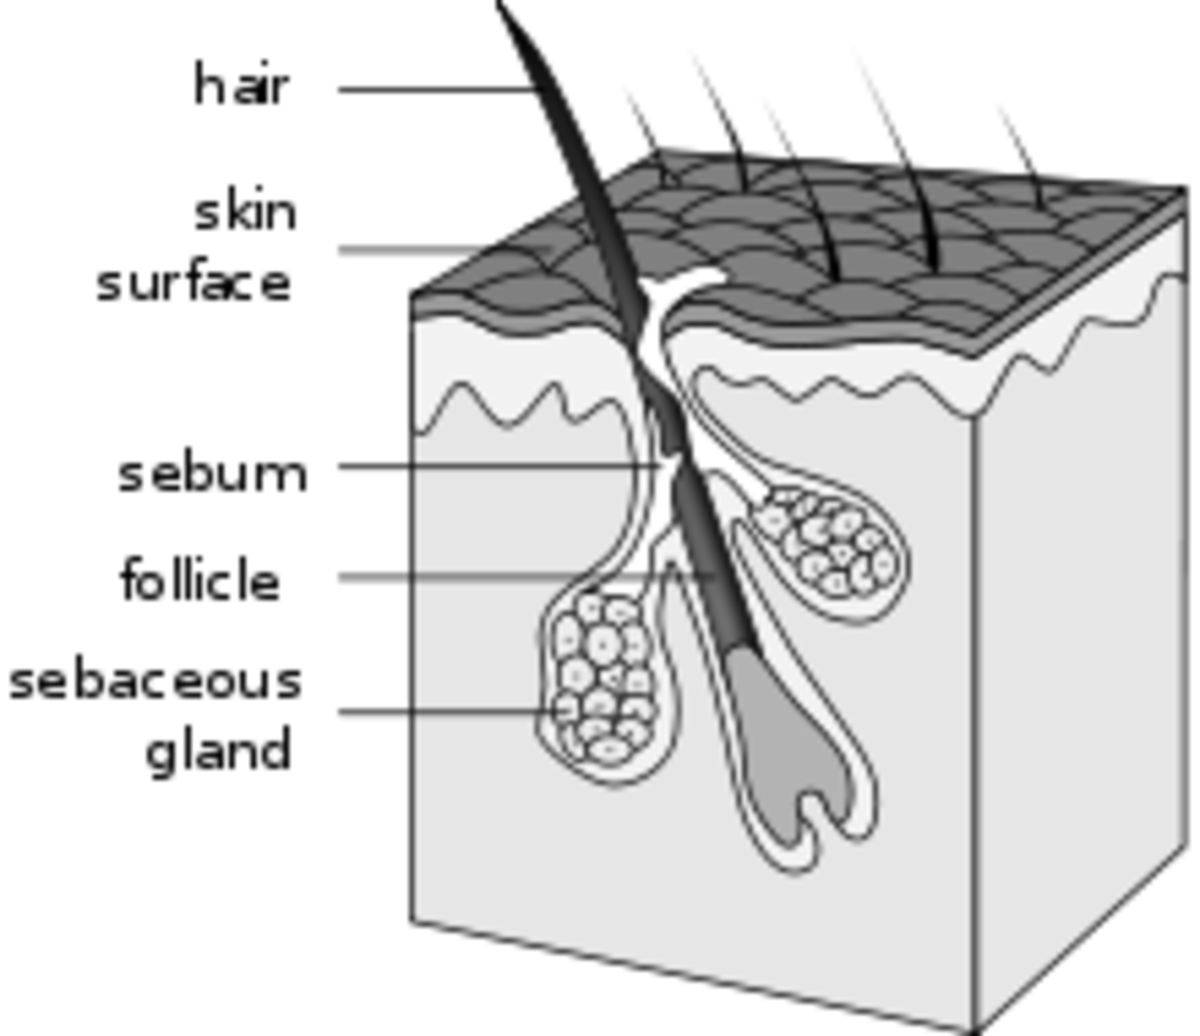 Diagram of Hair structure